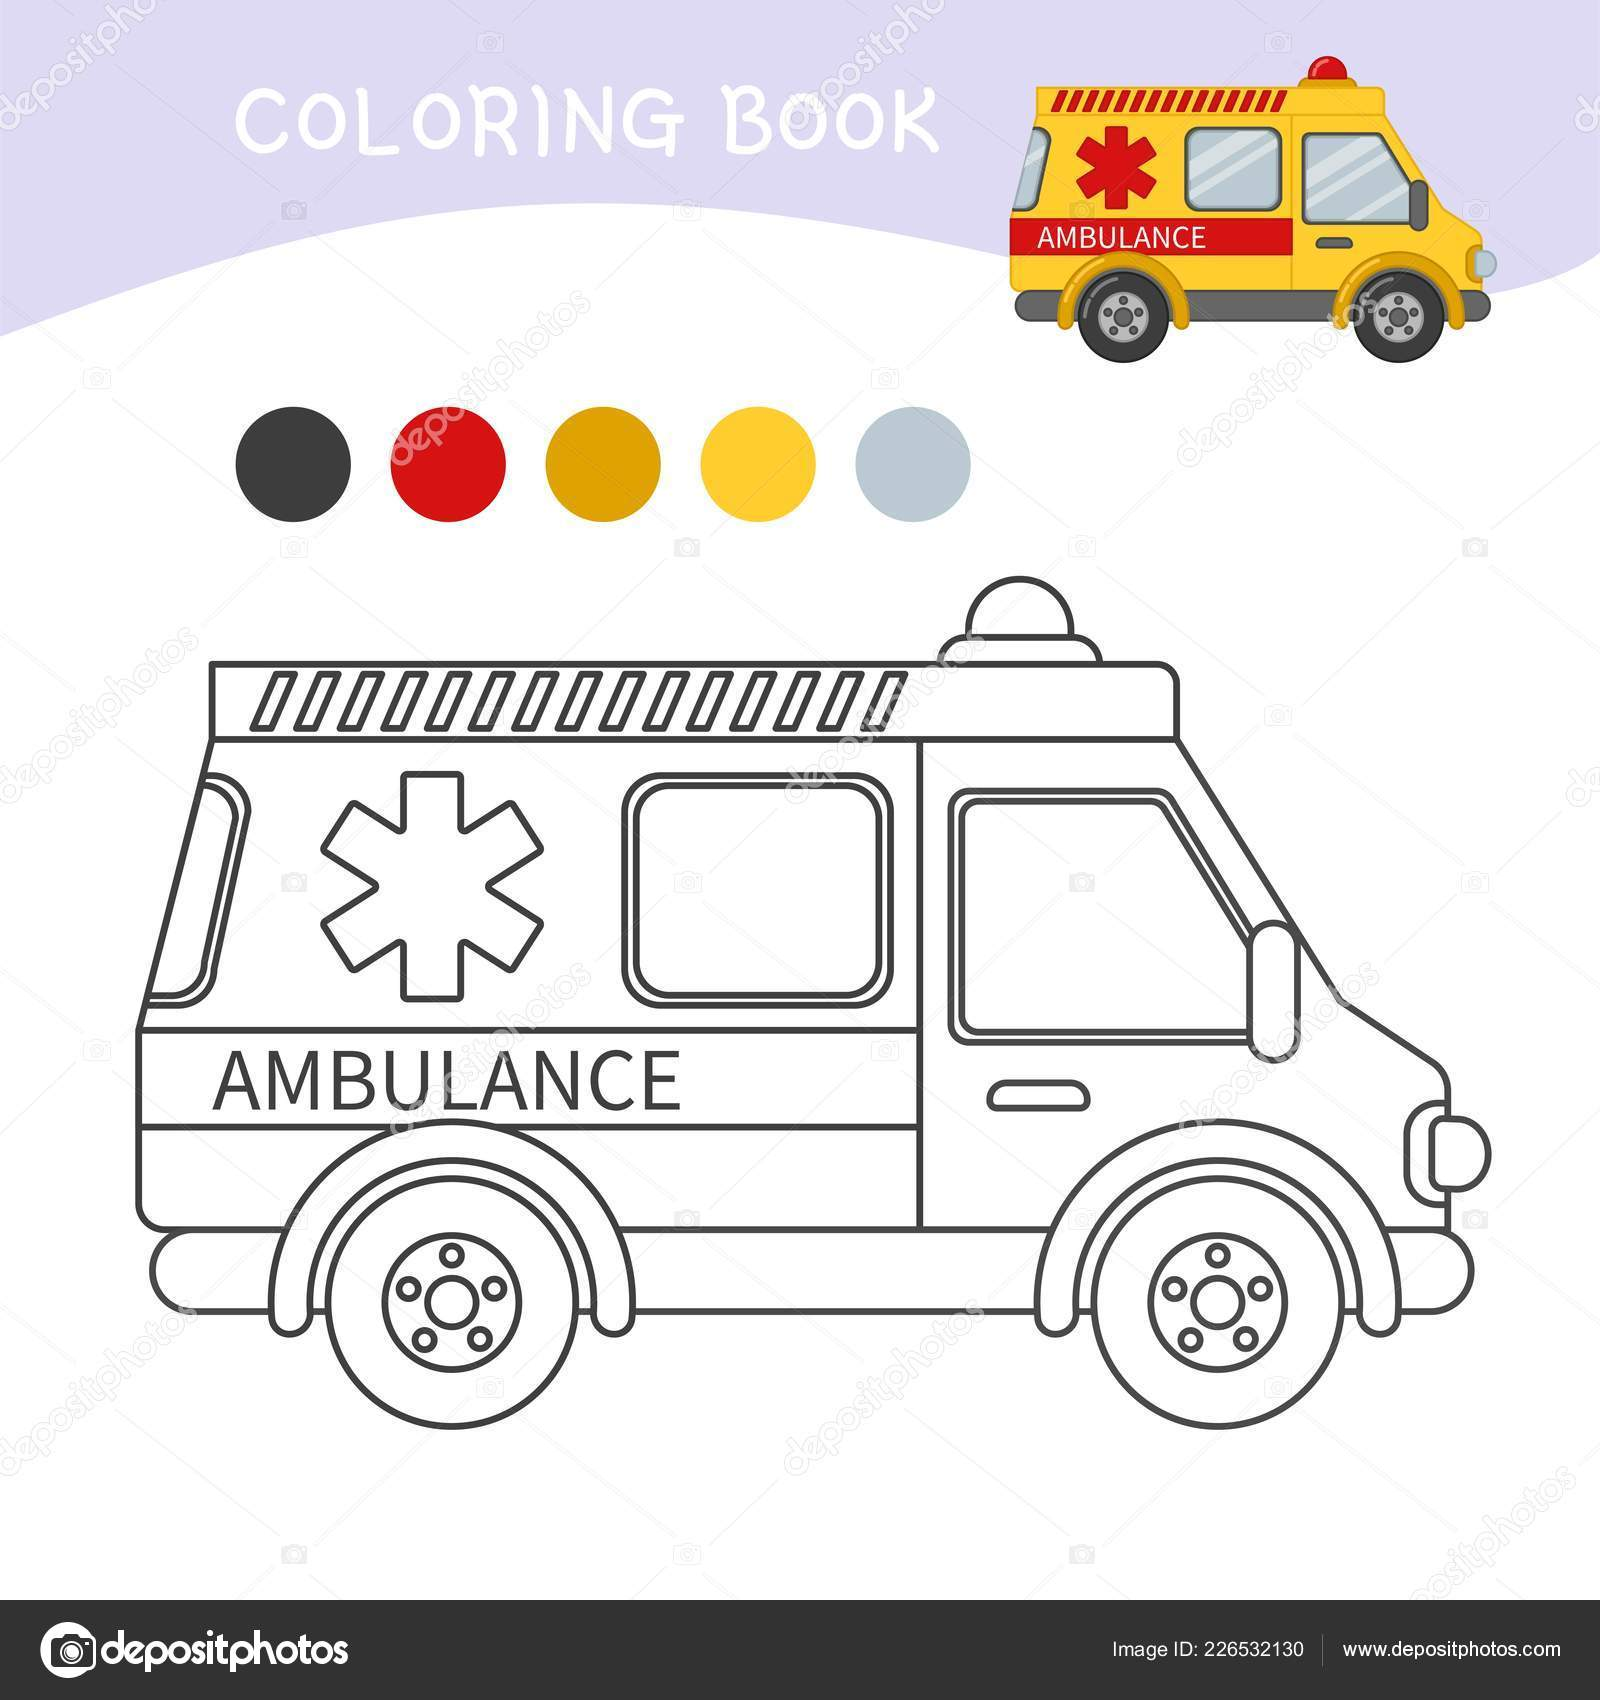 Coloring Book Children Cartoon Ambulance Stock Vector